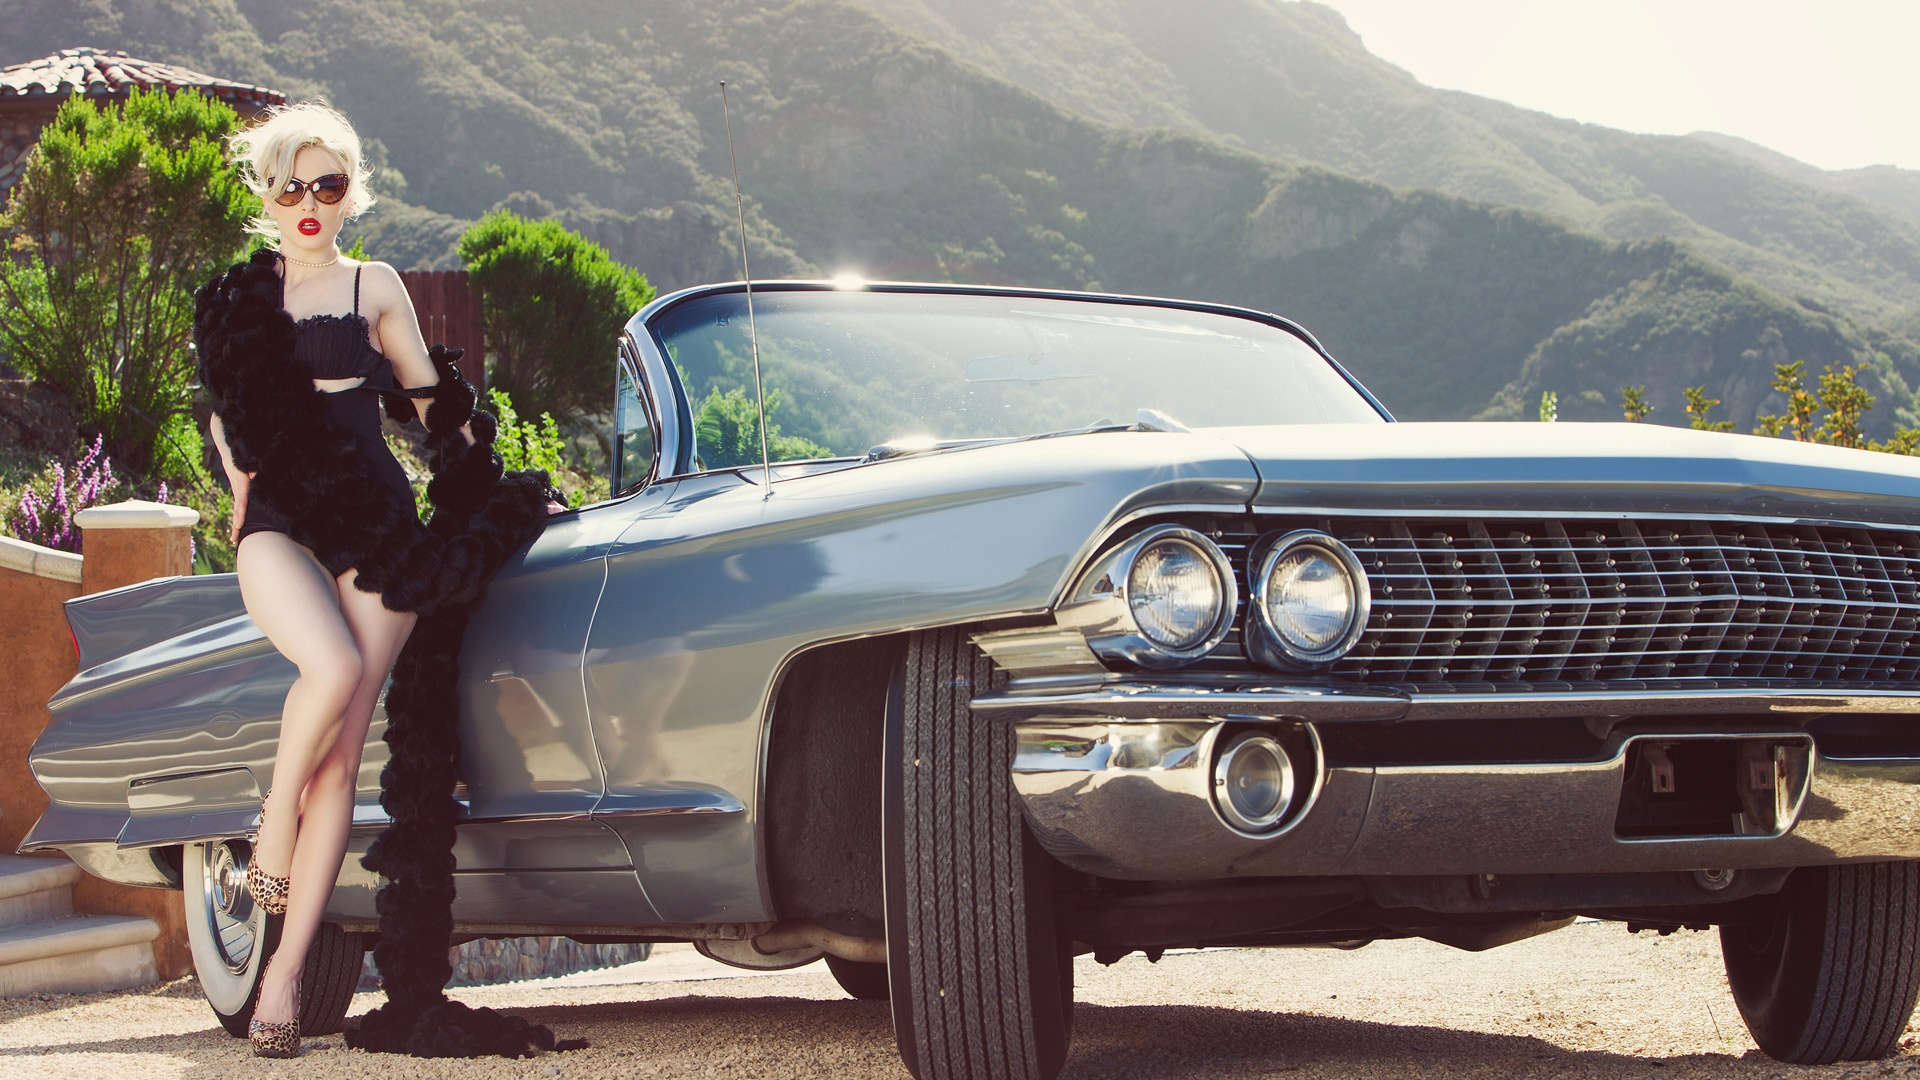 hot blonde babe Carissa White and american classic car wallpaper 1920x1080